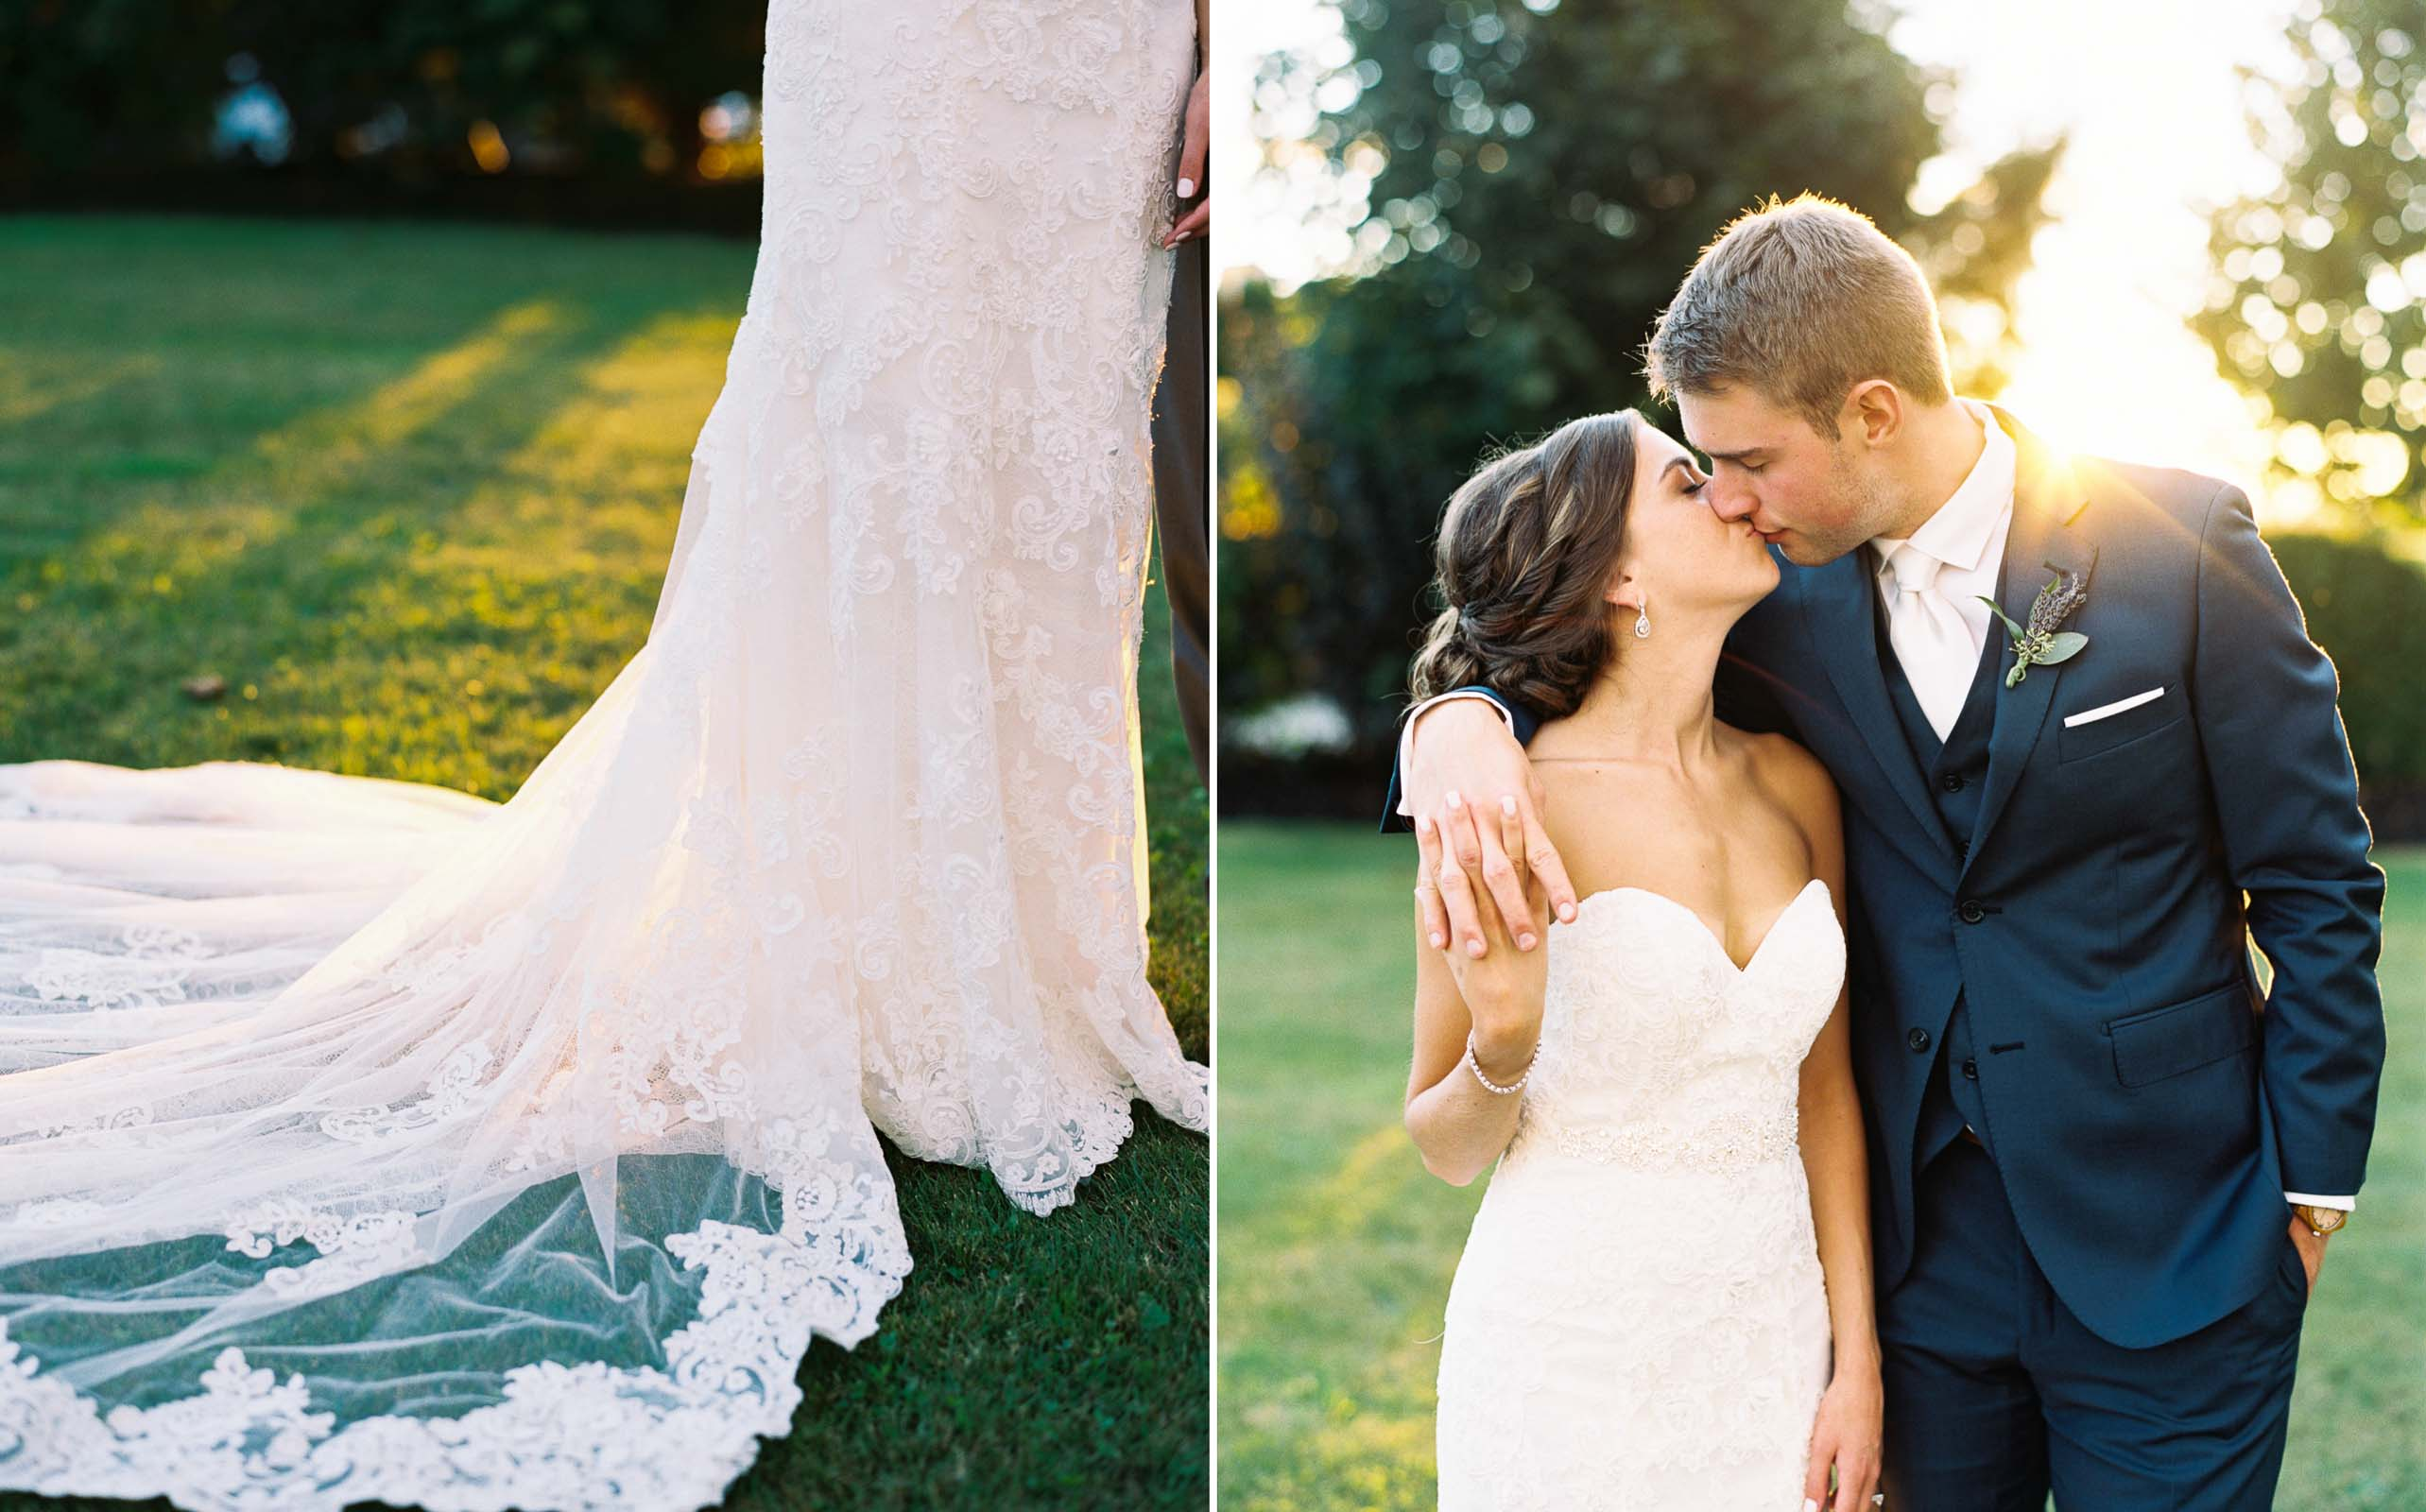 Golden hour wedding portraits on the lawn at Lord Hill Farms captured by Seattle Wedding Photographer Anna Peters